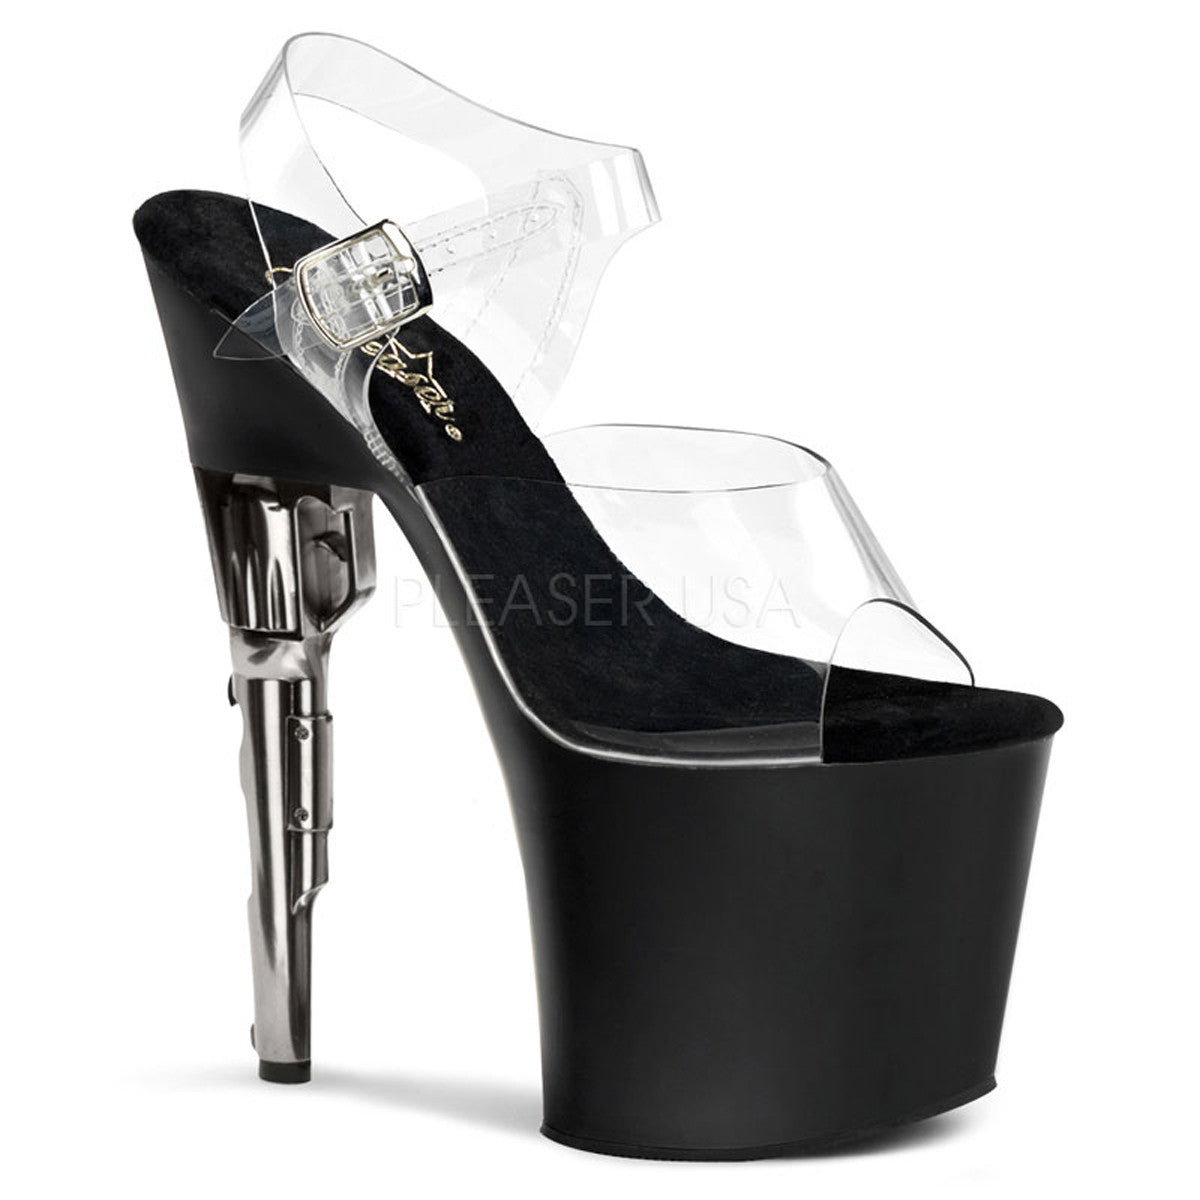 PLEASER BONDGIRL-708 Clear-Black Matte Ankle Strap Sandals - Shoecup.com - 1